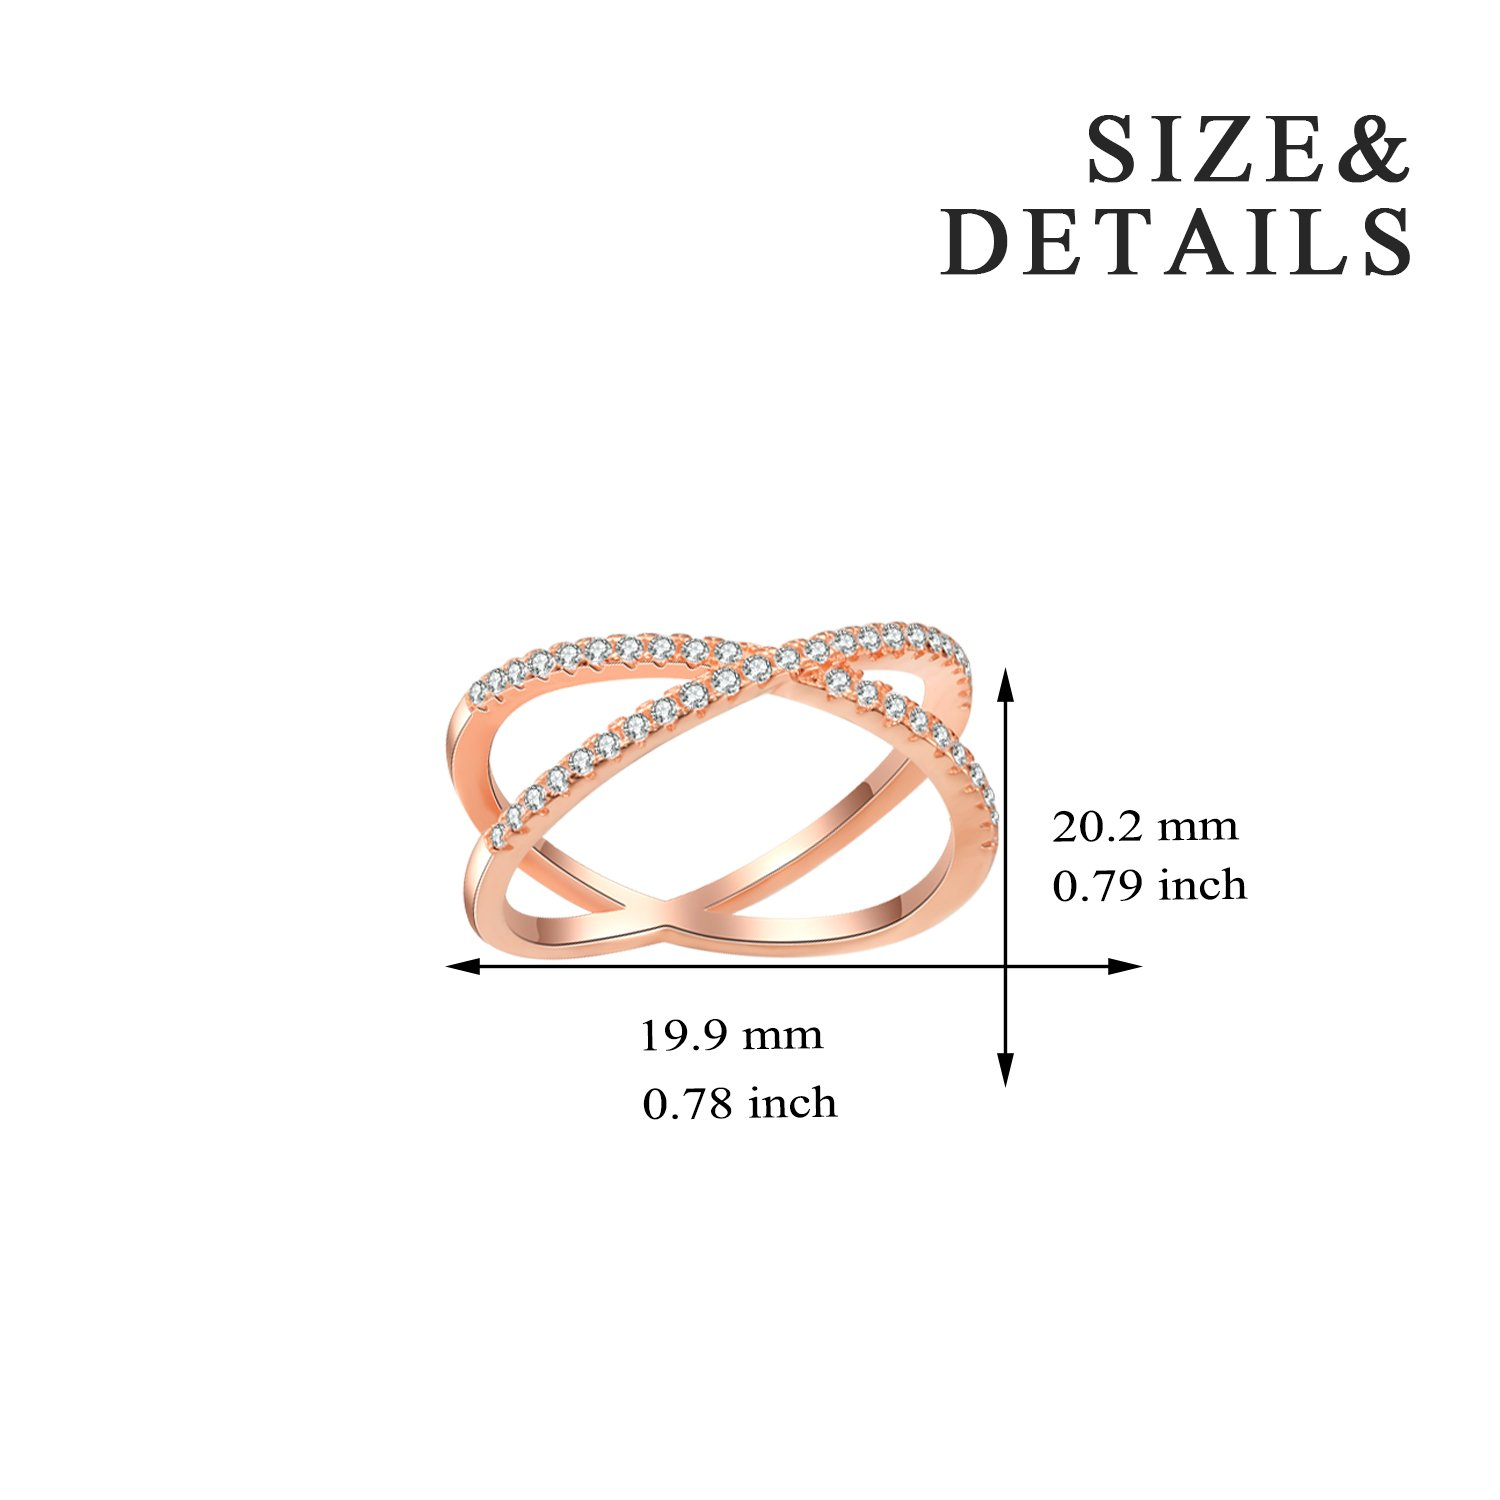 X Ring Sterling Silver, Cubic Zirconia X Criss Cross Ring Women, Size 6-8 (Rose-Gold-Plated-Silver, 7) by SISGEM (Image #2)